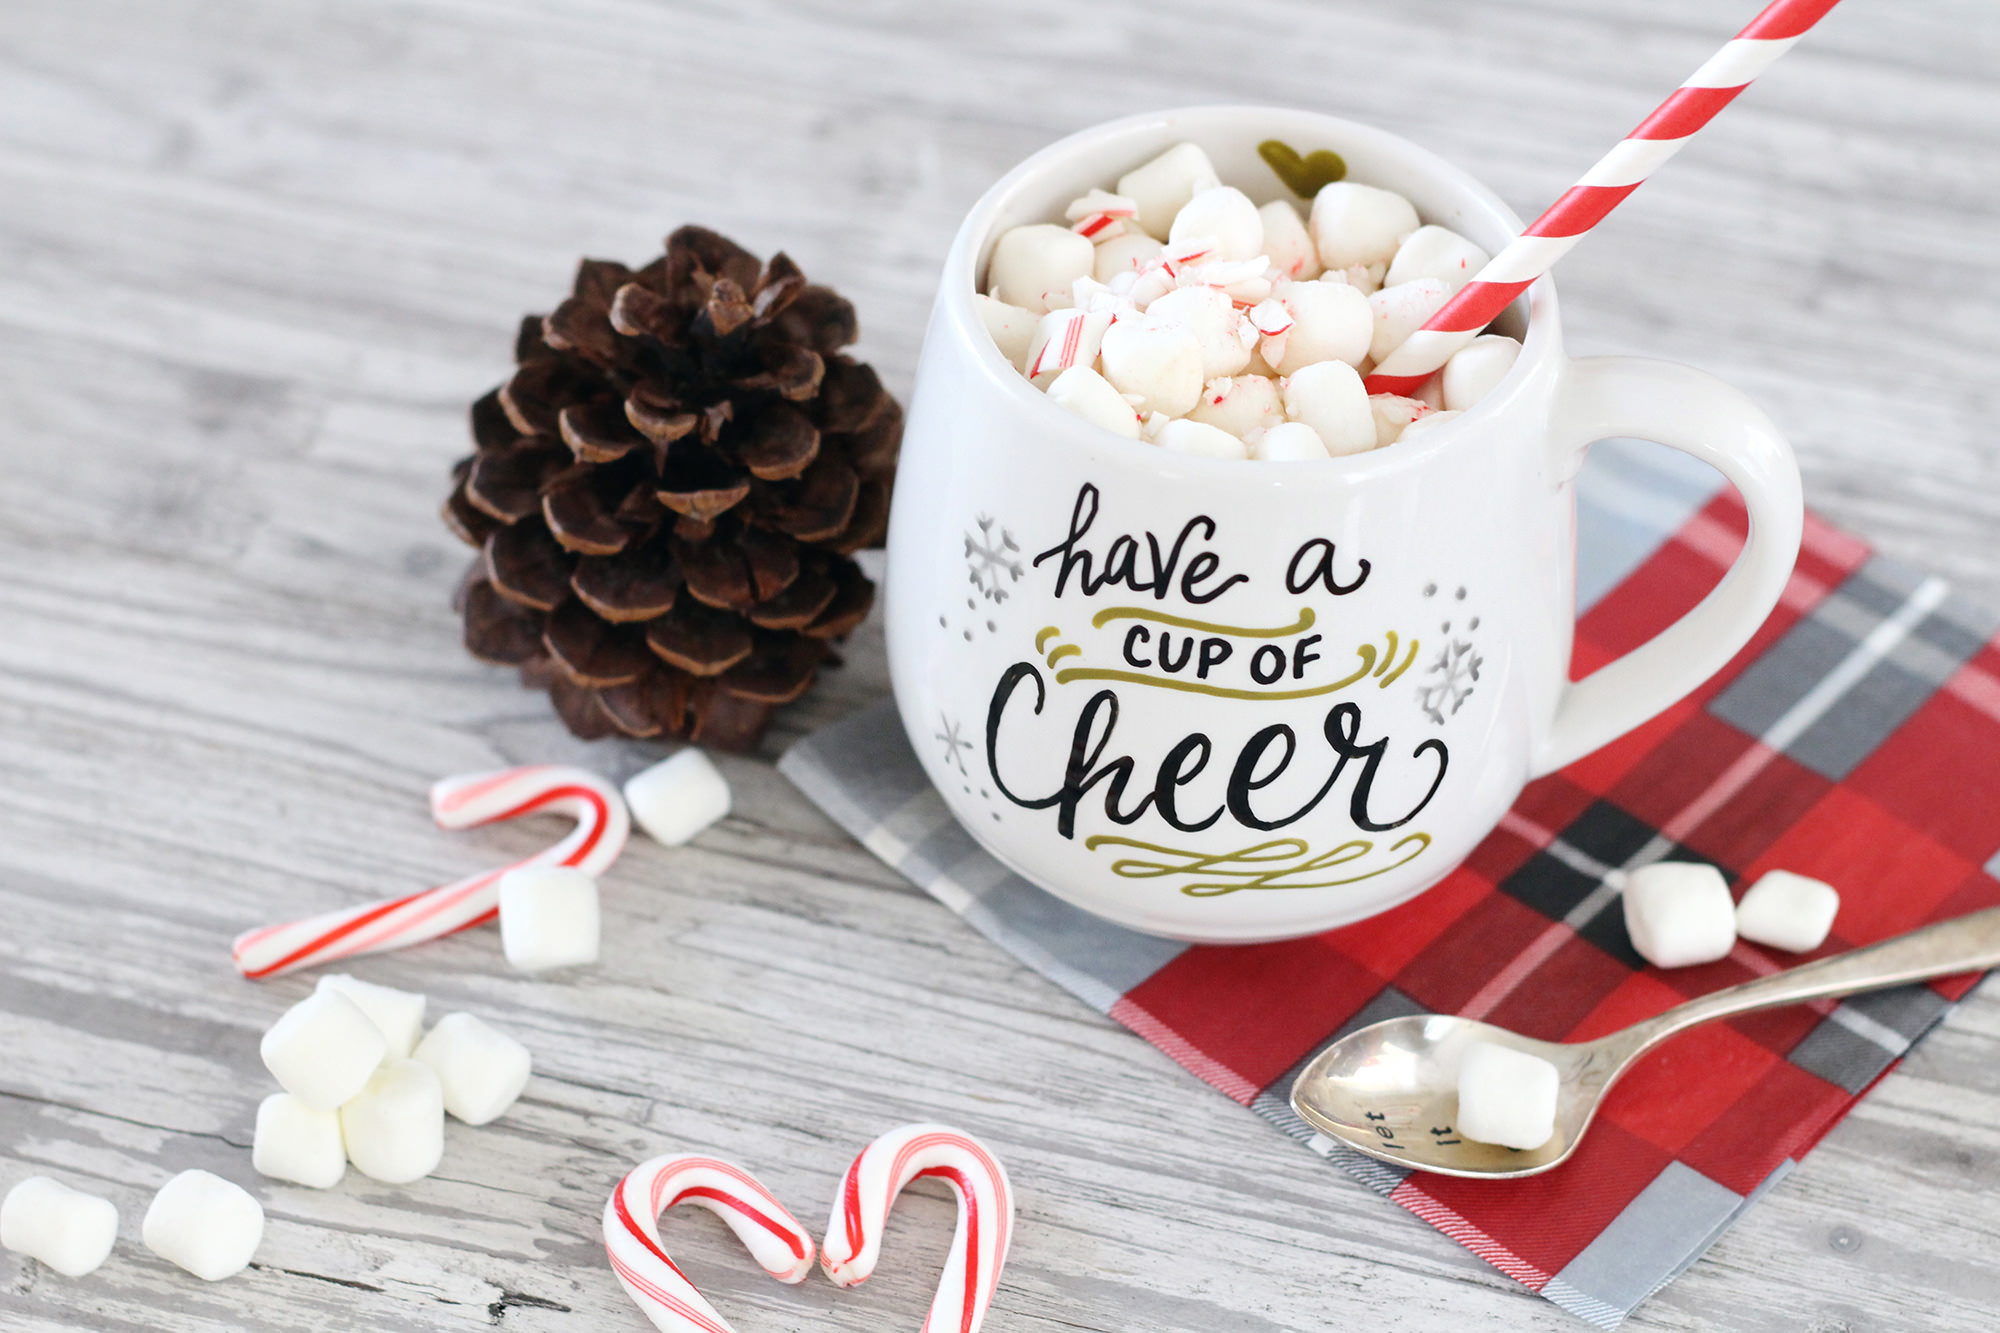 Have a cup of cheer - in a customized, DIY, hand lettered mug!